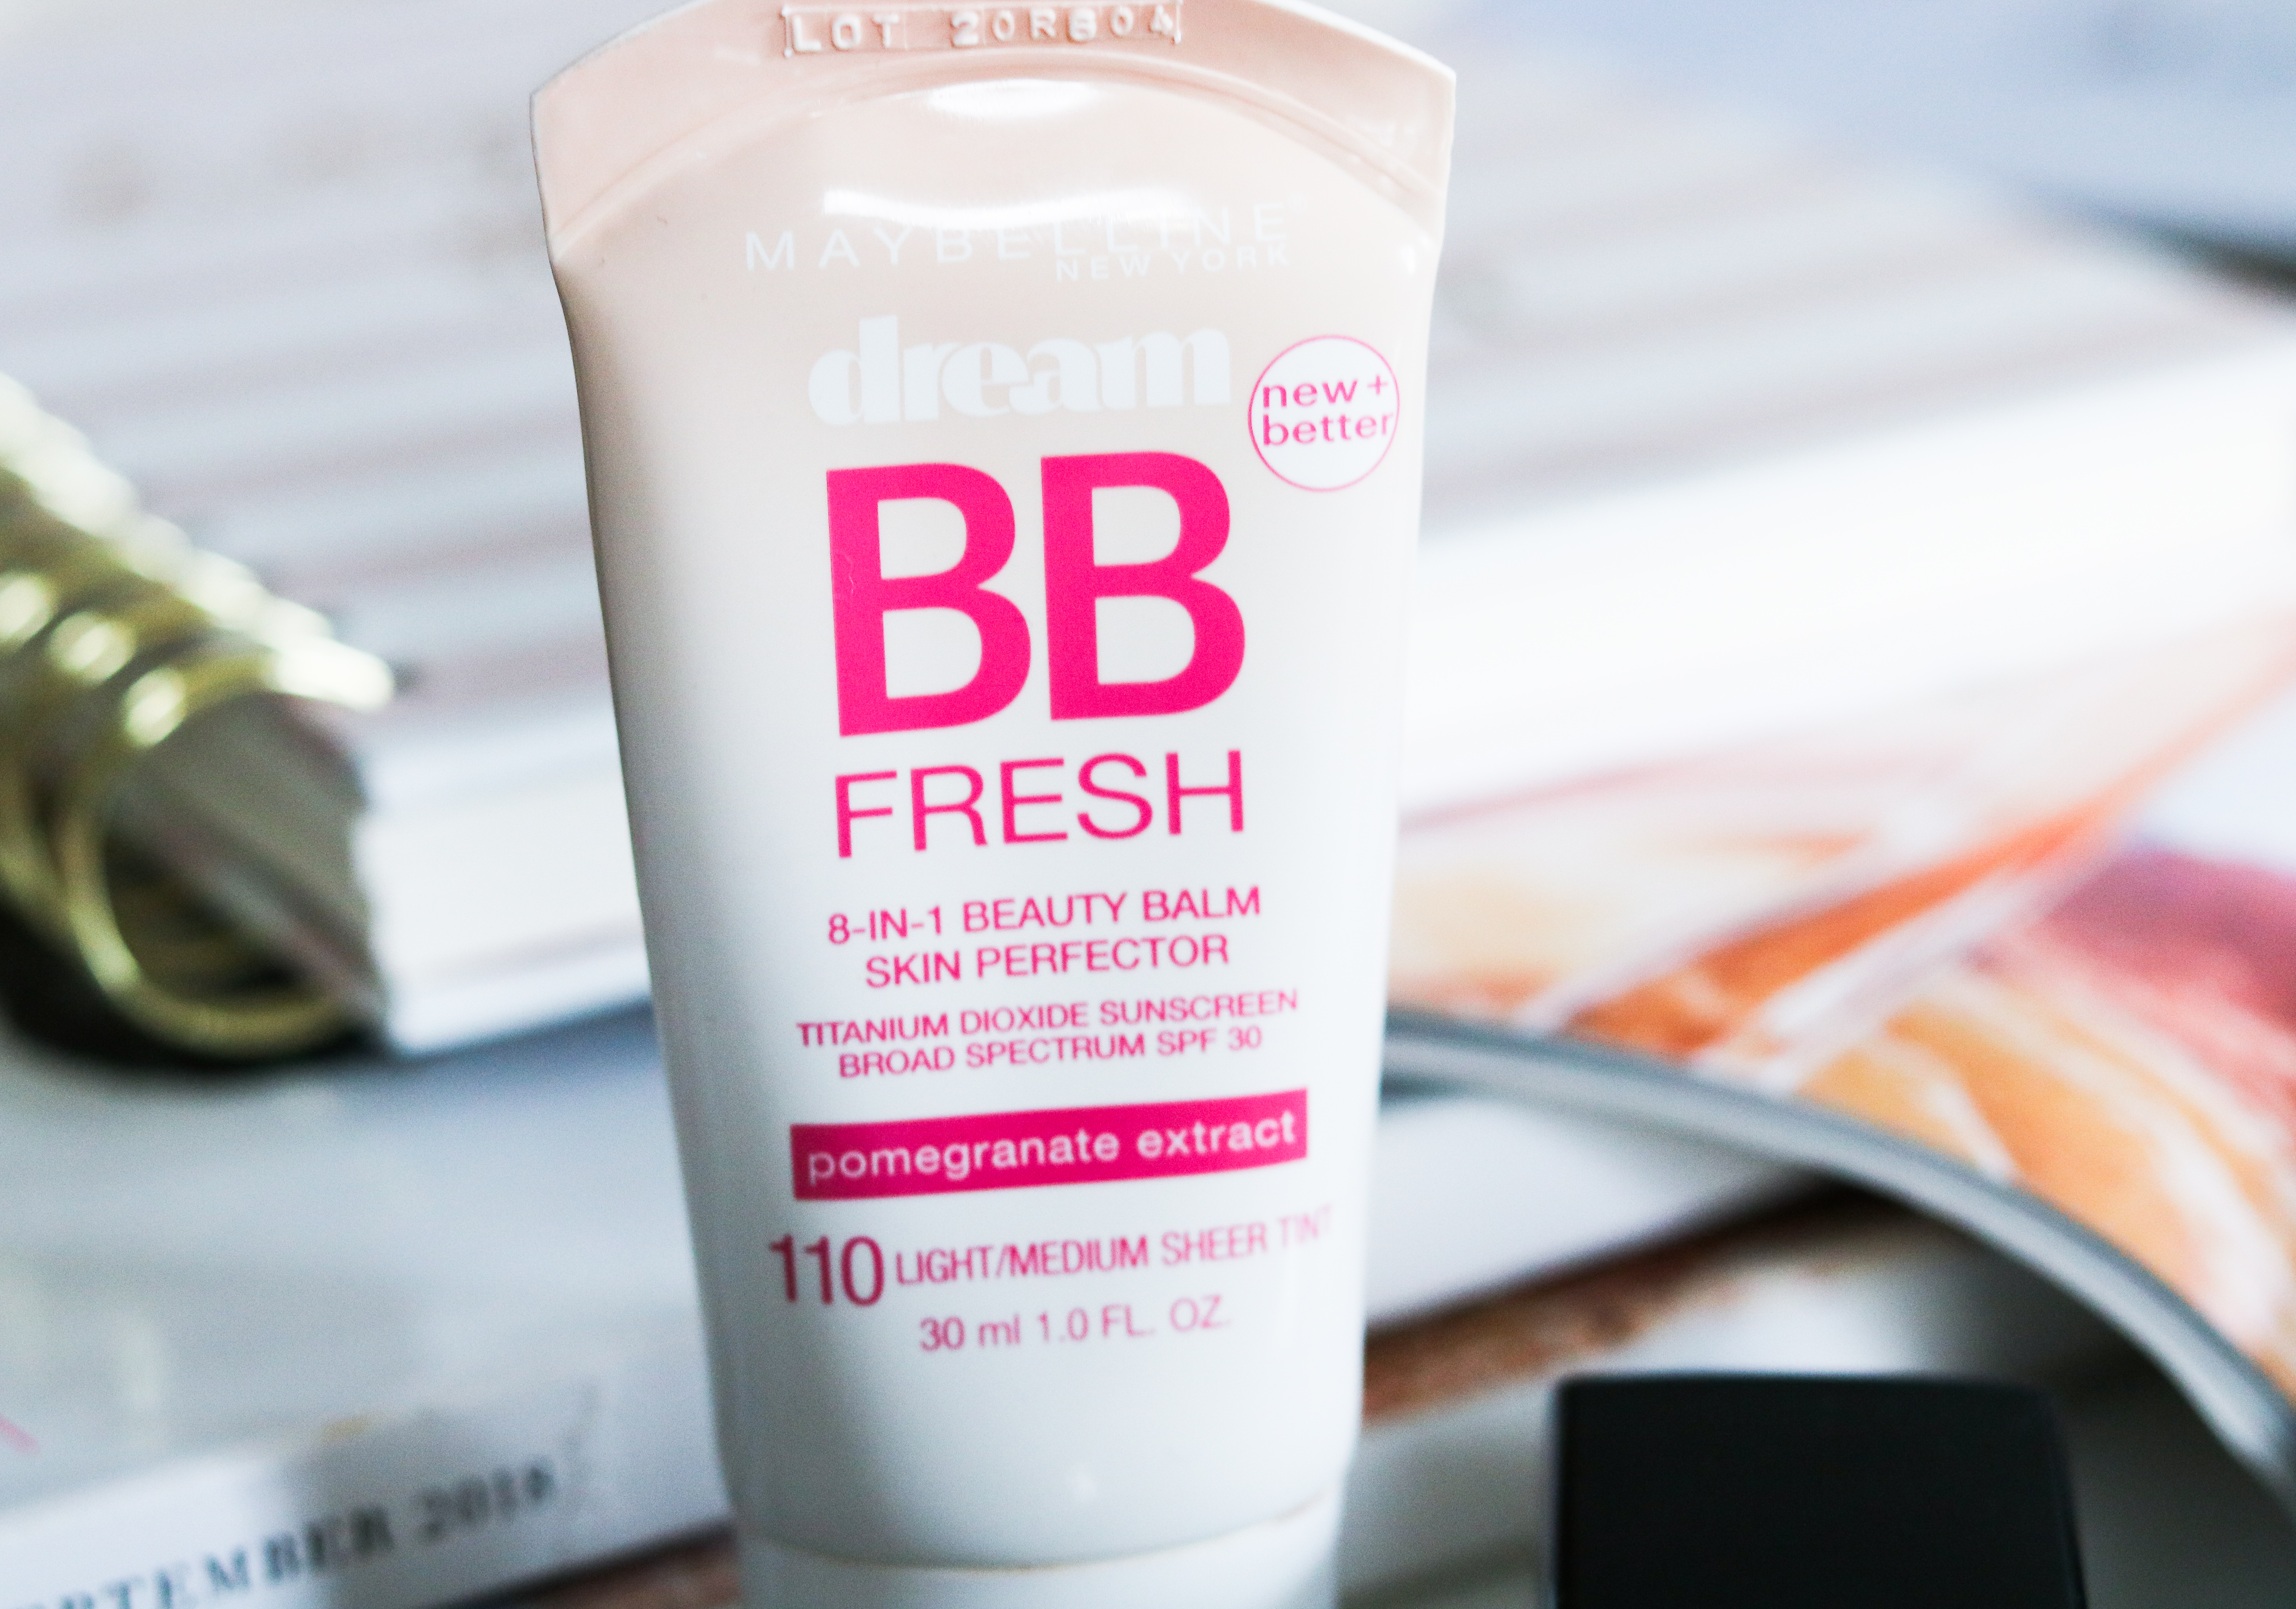 Underrated Makeup Products I Maybelline BB Cream #Makeup #DrugstoreMakeup